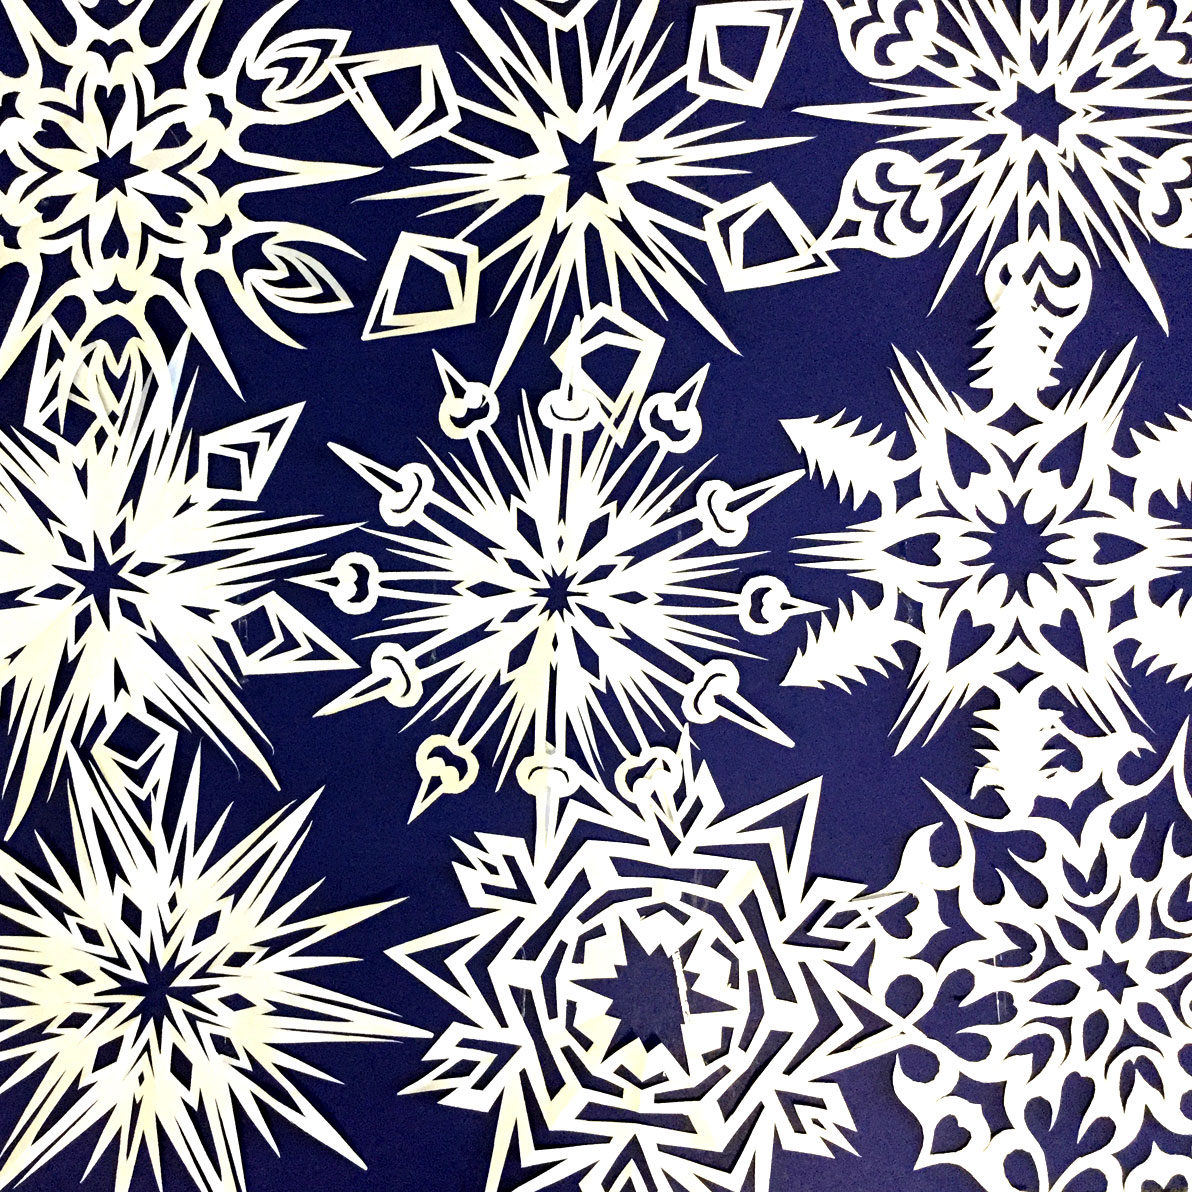 Make Your Own Snowflake with Gary Chapman